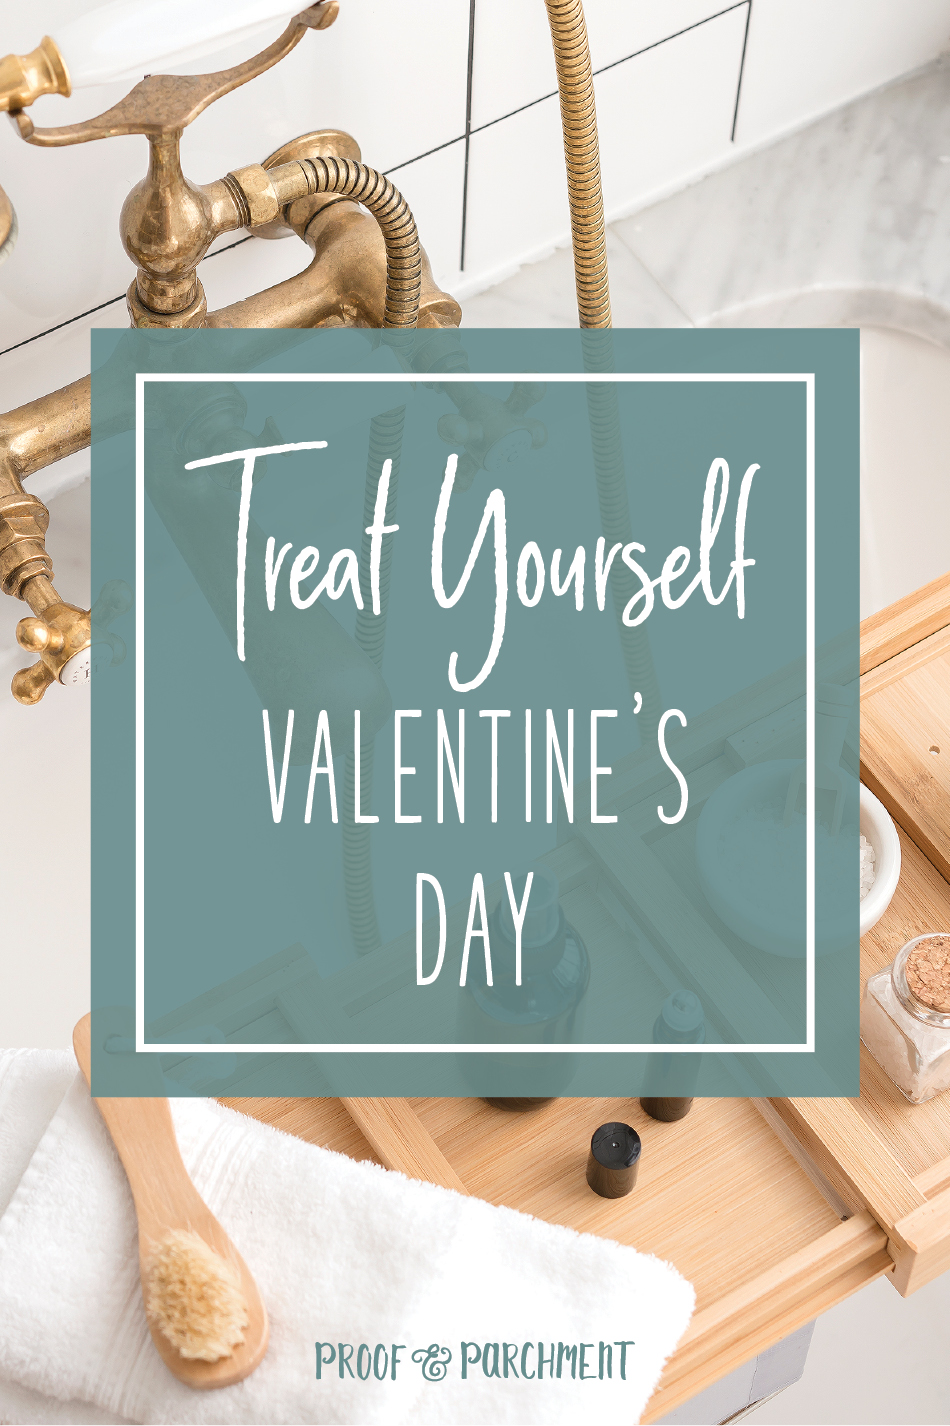 Treat Yourself This Valentine's Day